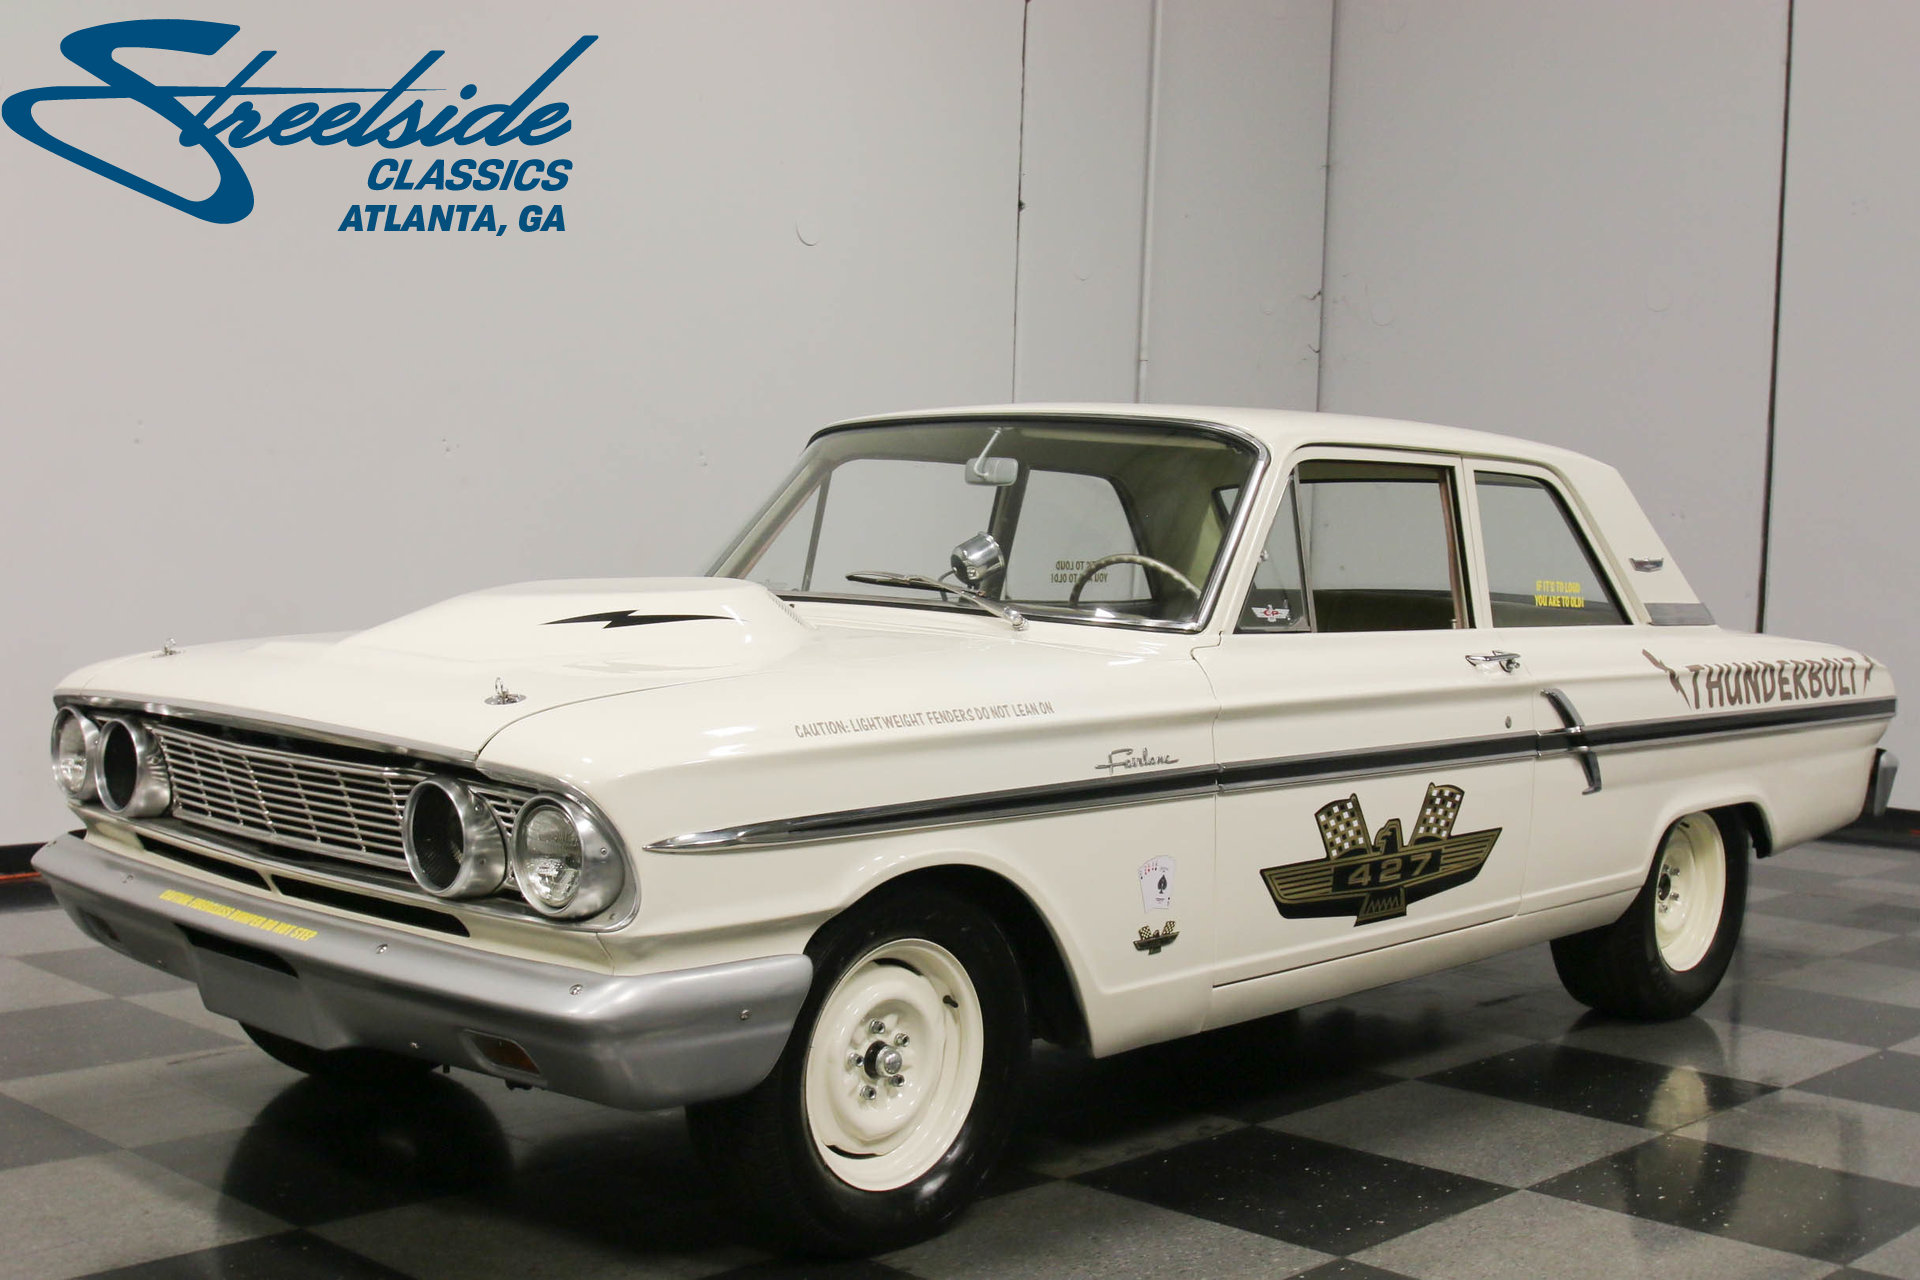 For Sale: 1964 Ford Fairlane. Spincar view. Play Video